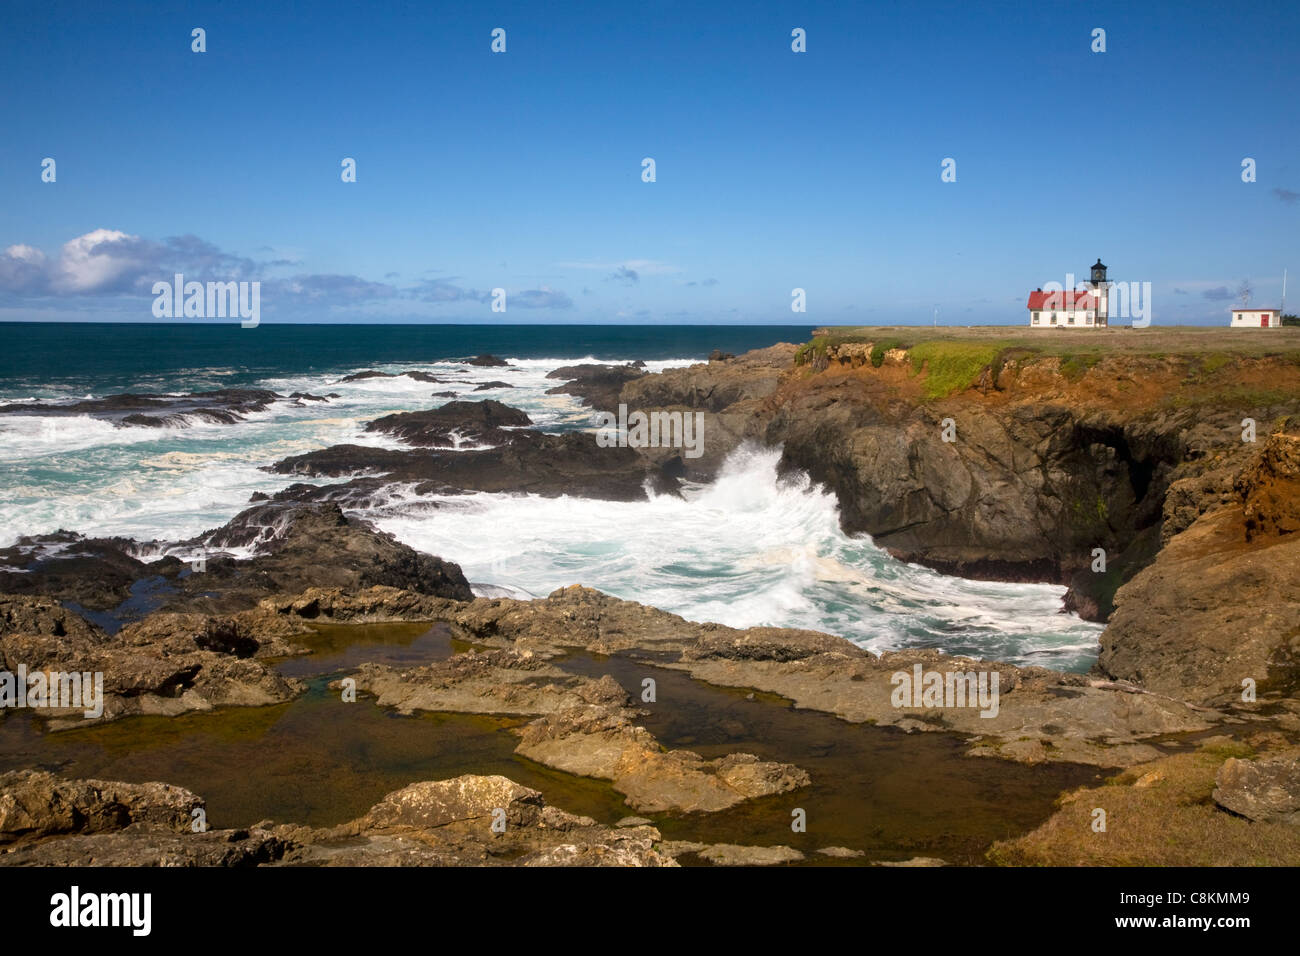 CALIFORNIA - Point Cabrillo Lighthouse on the Pacific Coast north of Mendocino in Point Cabrillo Light State Historic - Stock Image